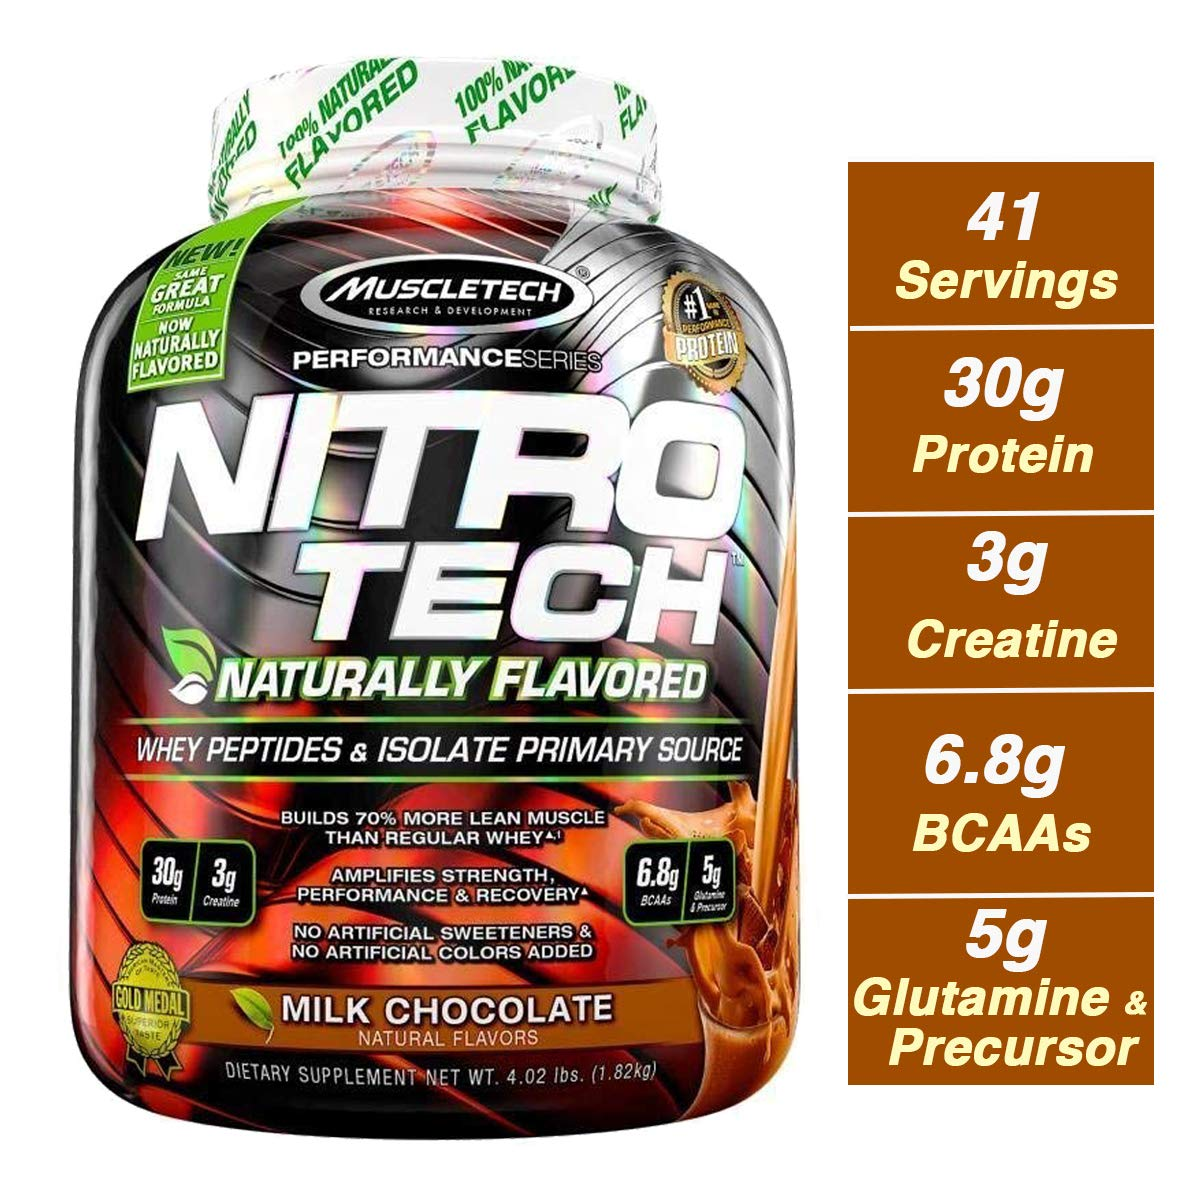 Muscletech Performance Series Nitrotech Naturally Flavored